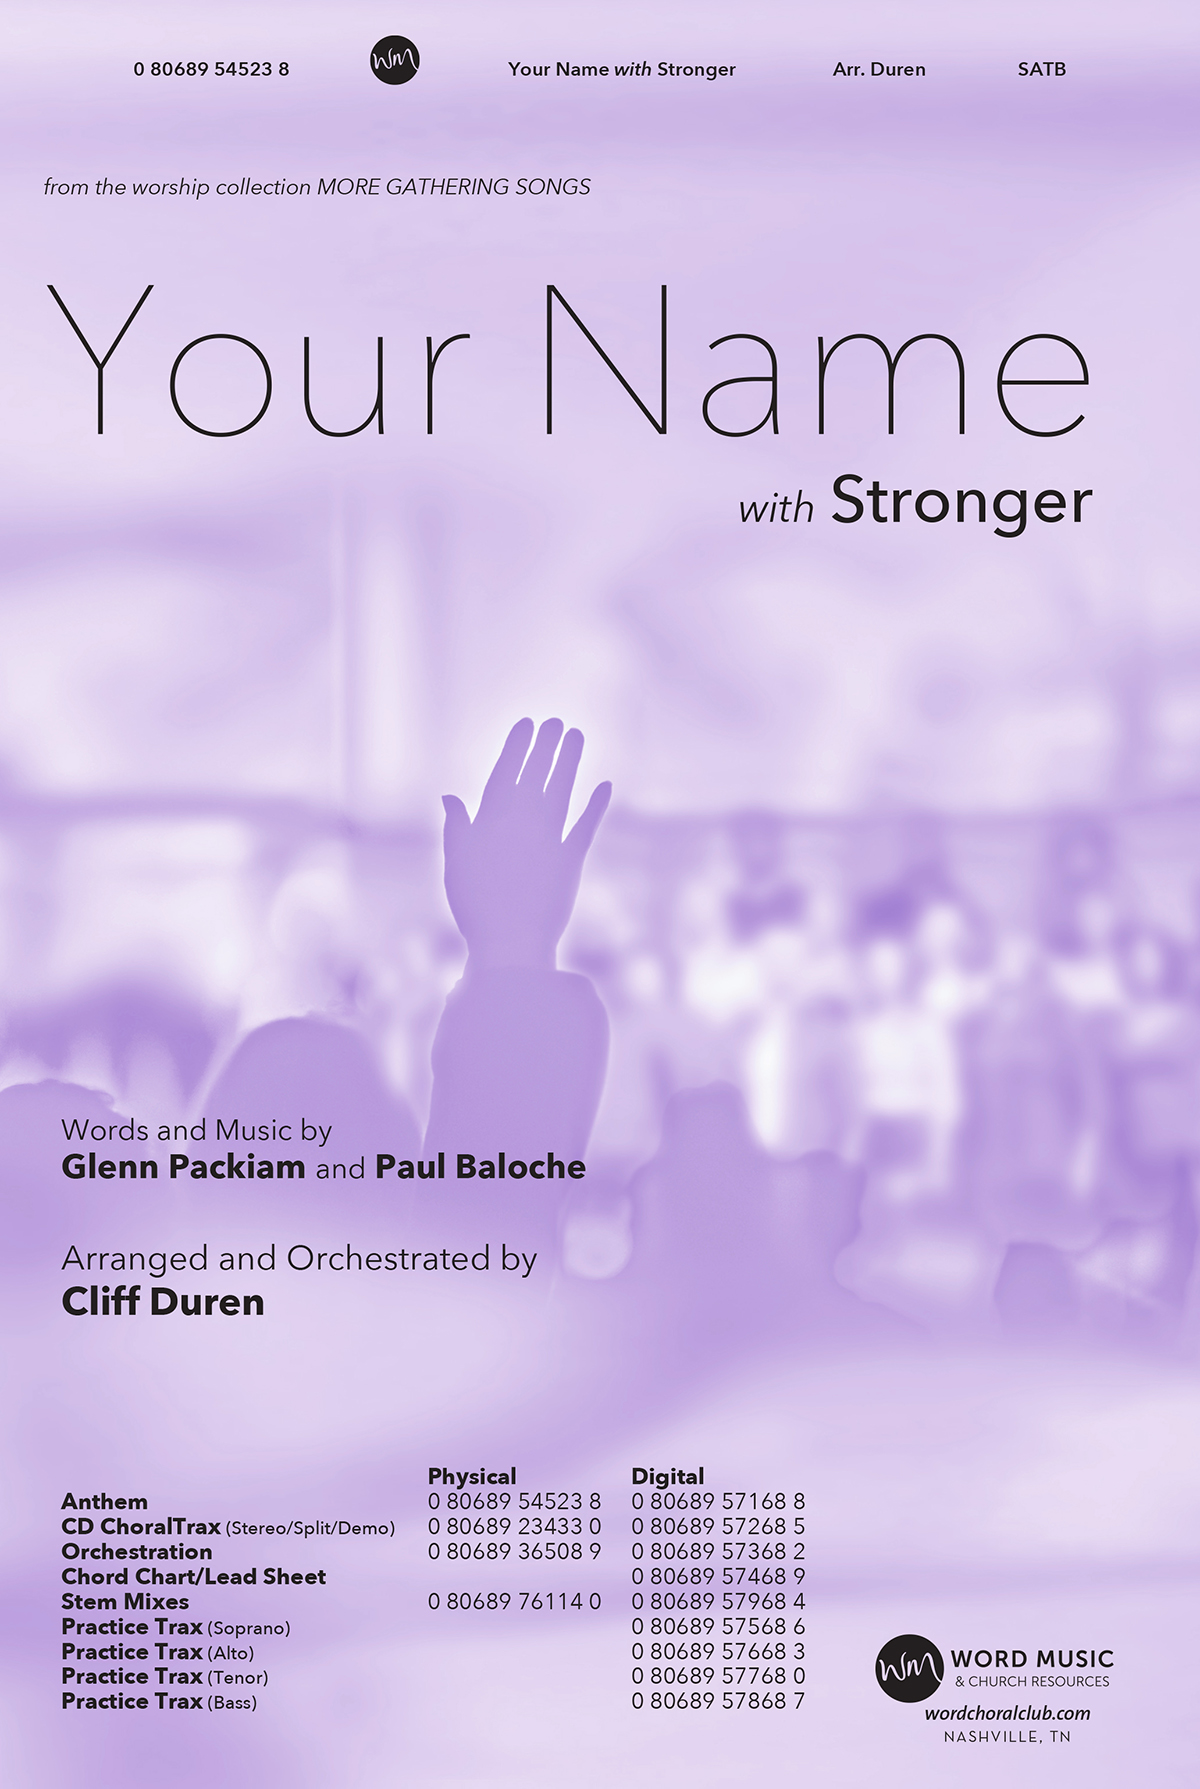 Your Name with Stronger